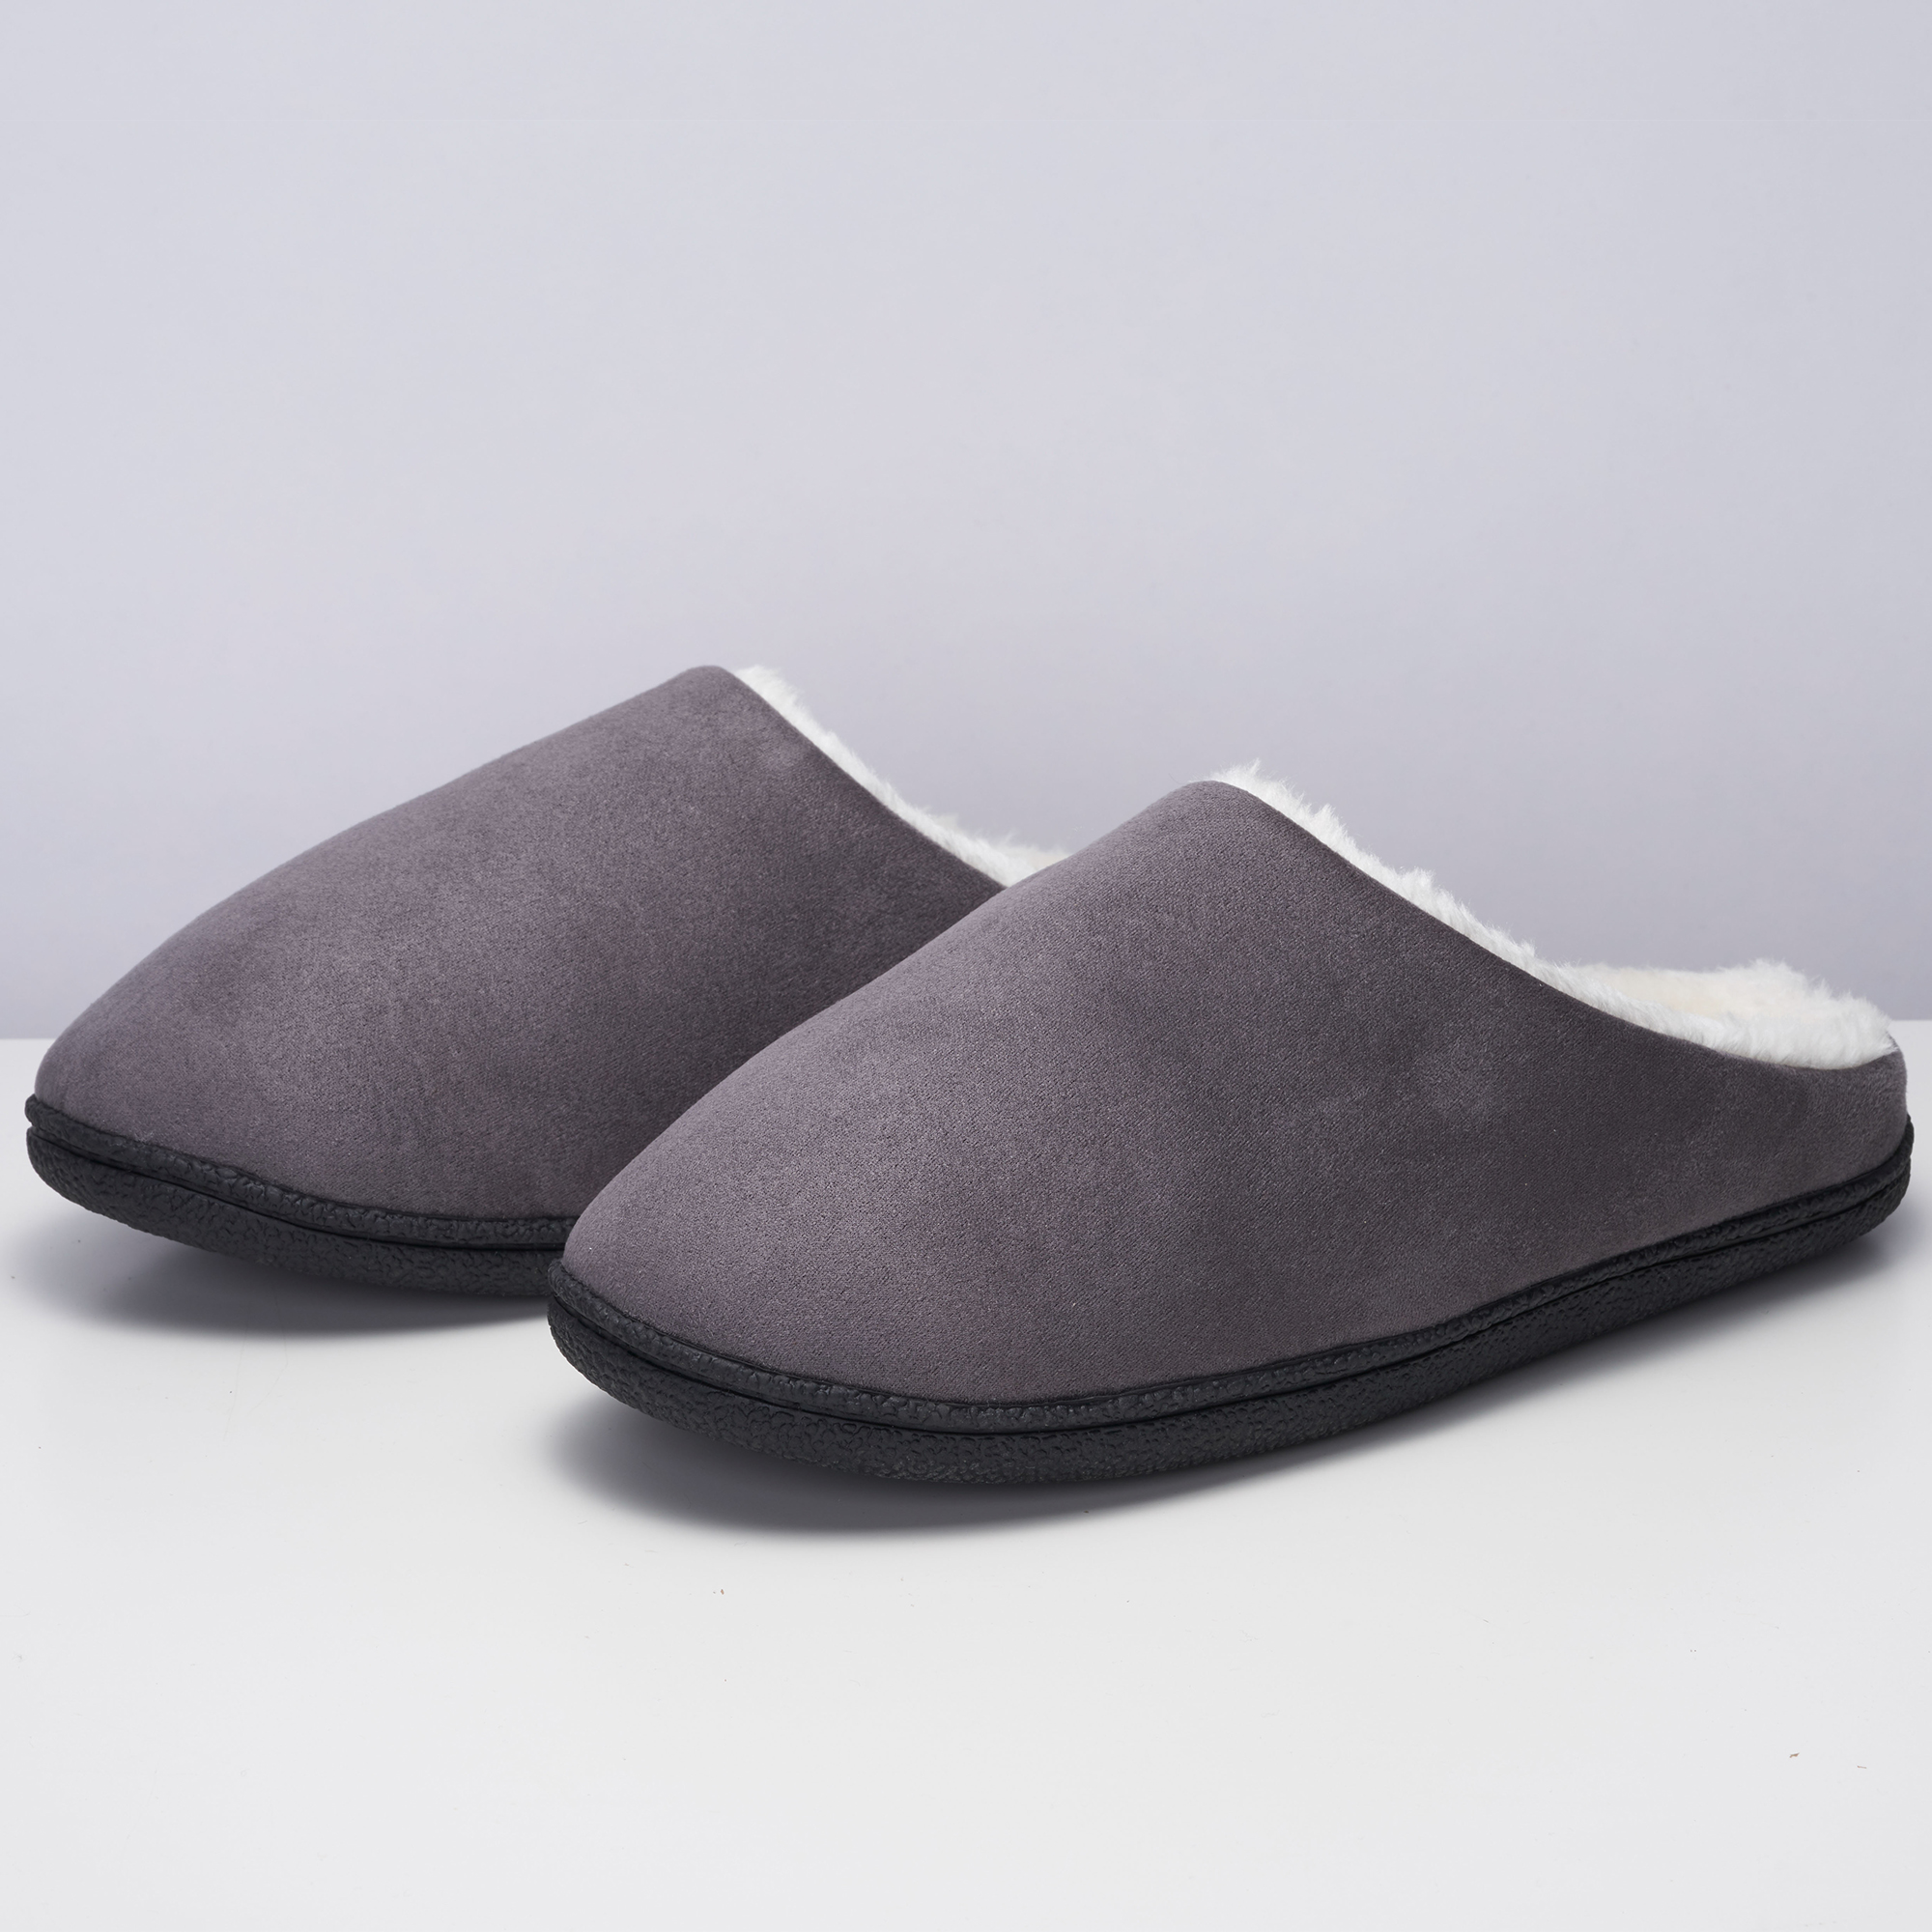 Alpine-Swiss-Mens-Memory-Foam-Clog-Slippers-Indoor-Comfort-Slip-On-House-Shoes thumbnail 29